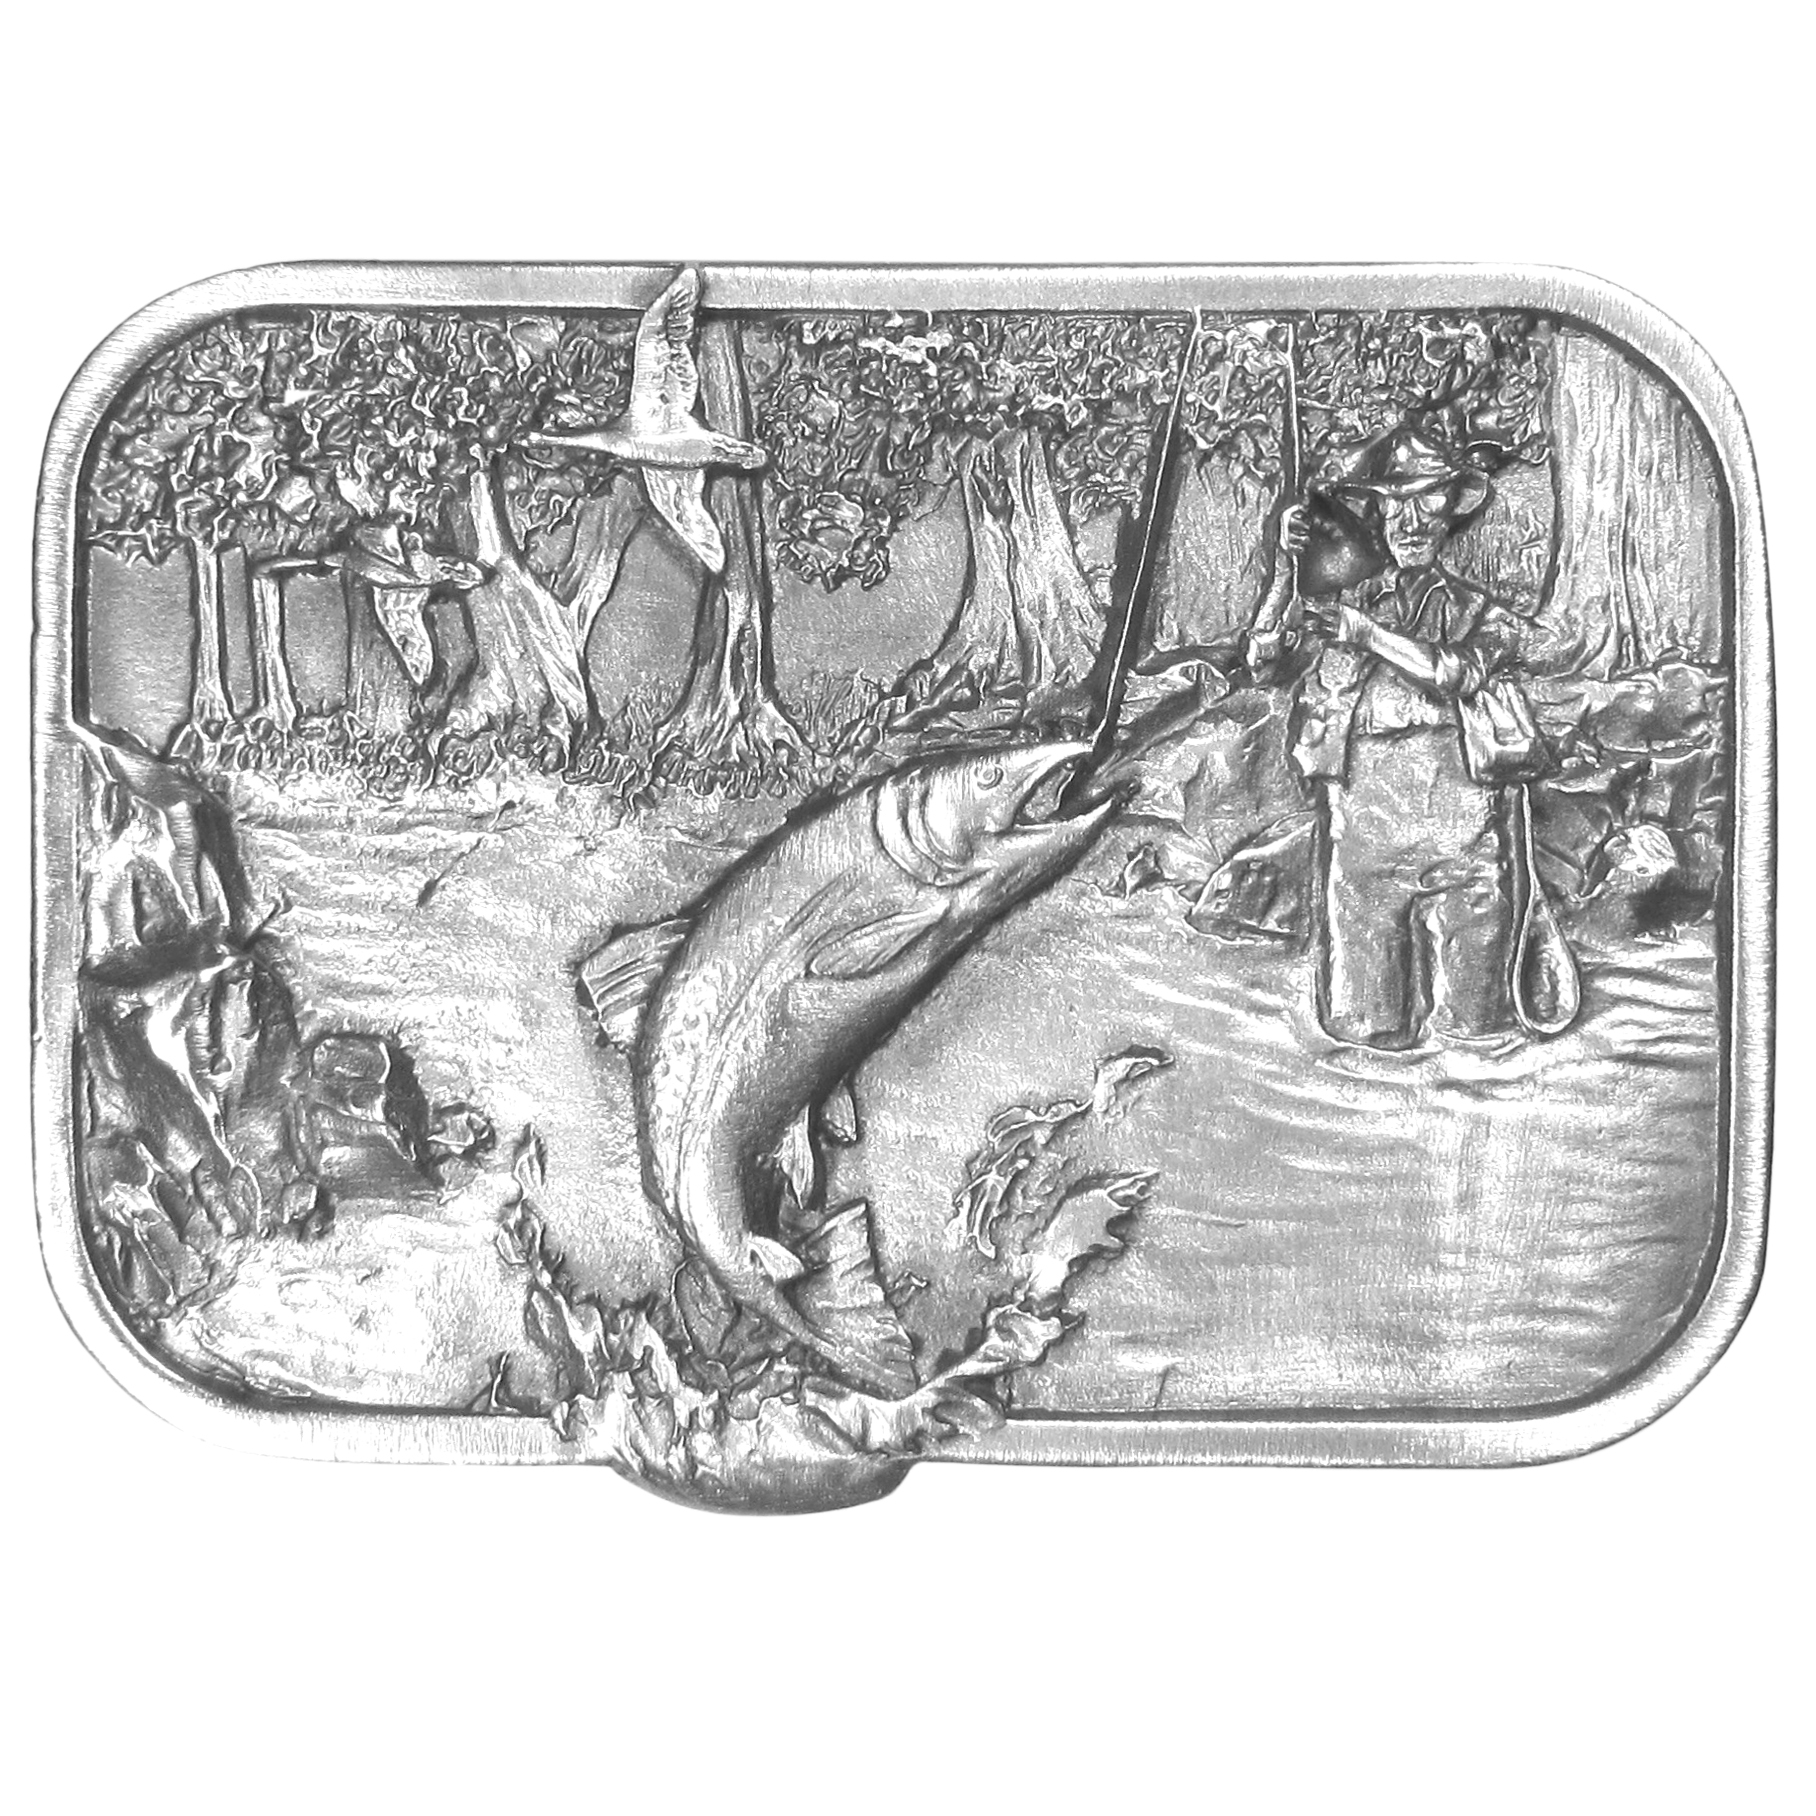 "Fisherman Antiqued Belt Buckle - ""This beautiful buckle is designed for the fisherman.  This stunning buckle has an image of a fisherman standing in a river in his waders, with a fishing pole hooking a fish, he also has a net, creel and fishermen's vest on.  There are trees and rocks and 2 geese flying in the sky.  On the back are the words, """"Fishing is one of the most popular forms of recreation.  It is a sport that people of all ages can enjoy.  The thrill, the challenge and the great outdoors make fishing among the best of all sporting activities.""""  This exquisitely carved buckle is made of fully cast metal with a standard bale that fits up to 2"""" belts."""